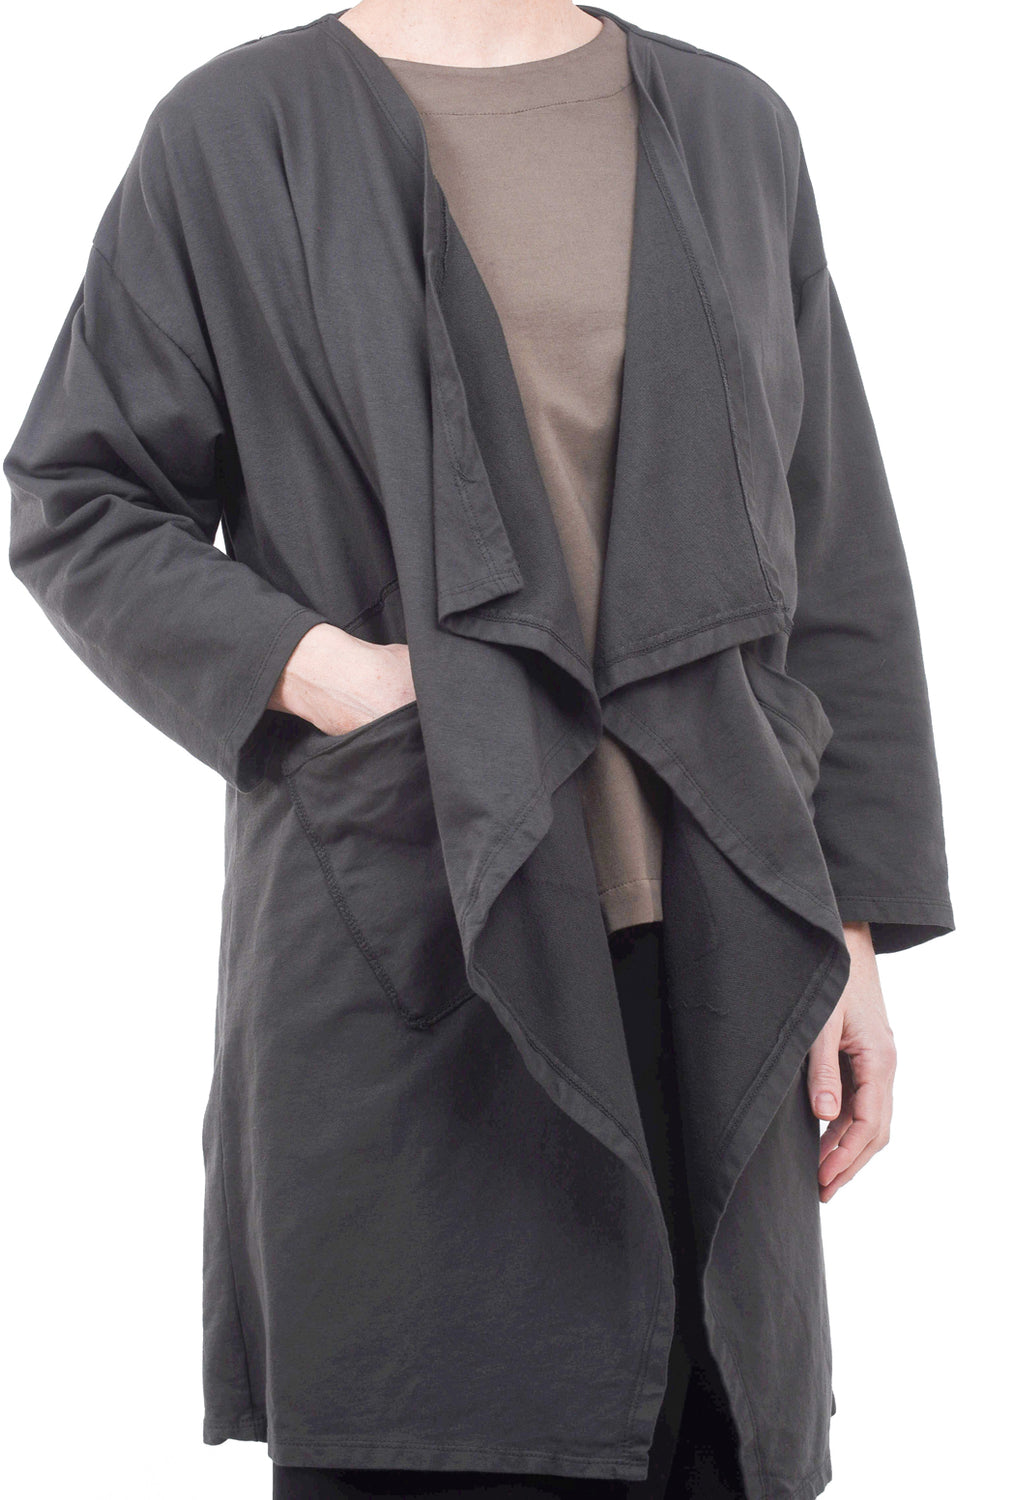 Oro Bonito Drape Lapel Pocket Cardie, Charcoal One Size Charcoal